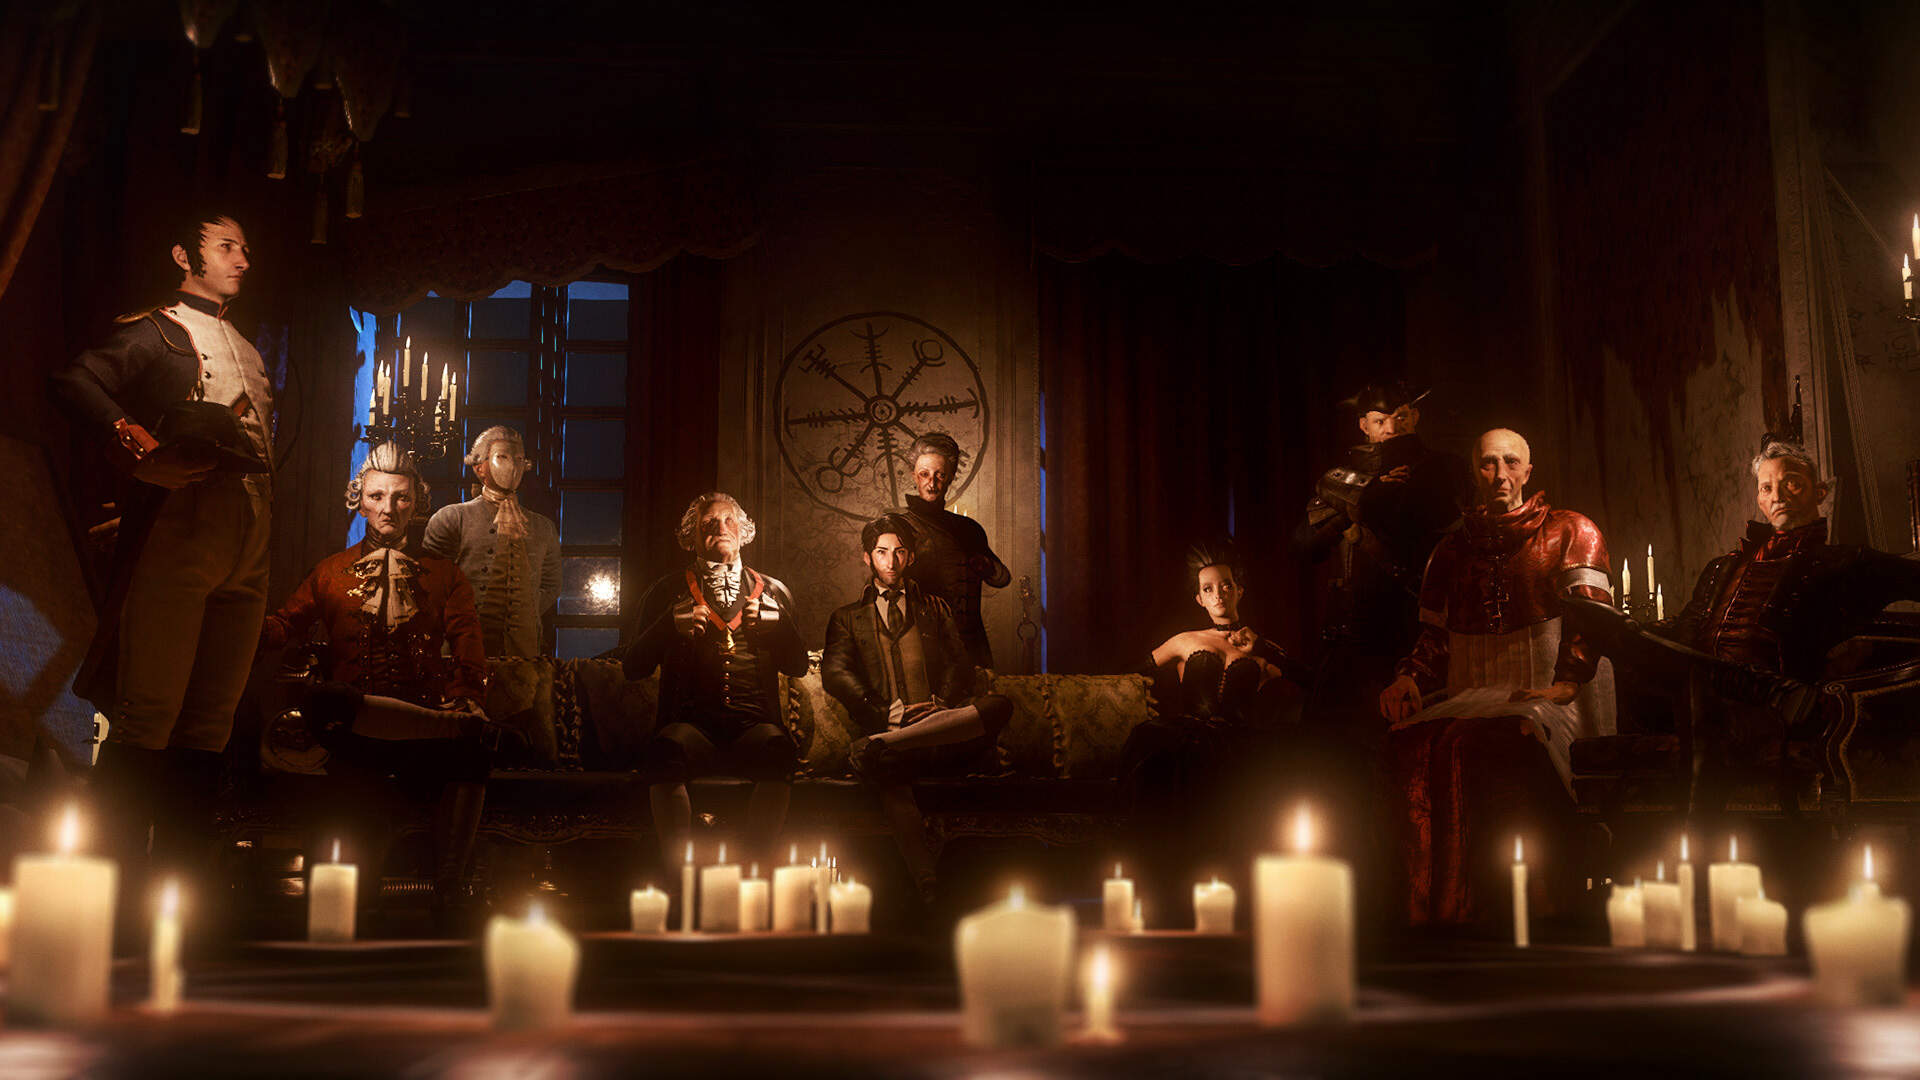 Another Vampire: The Masquerade RPG is Coming From the Developers of The Council